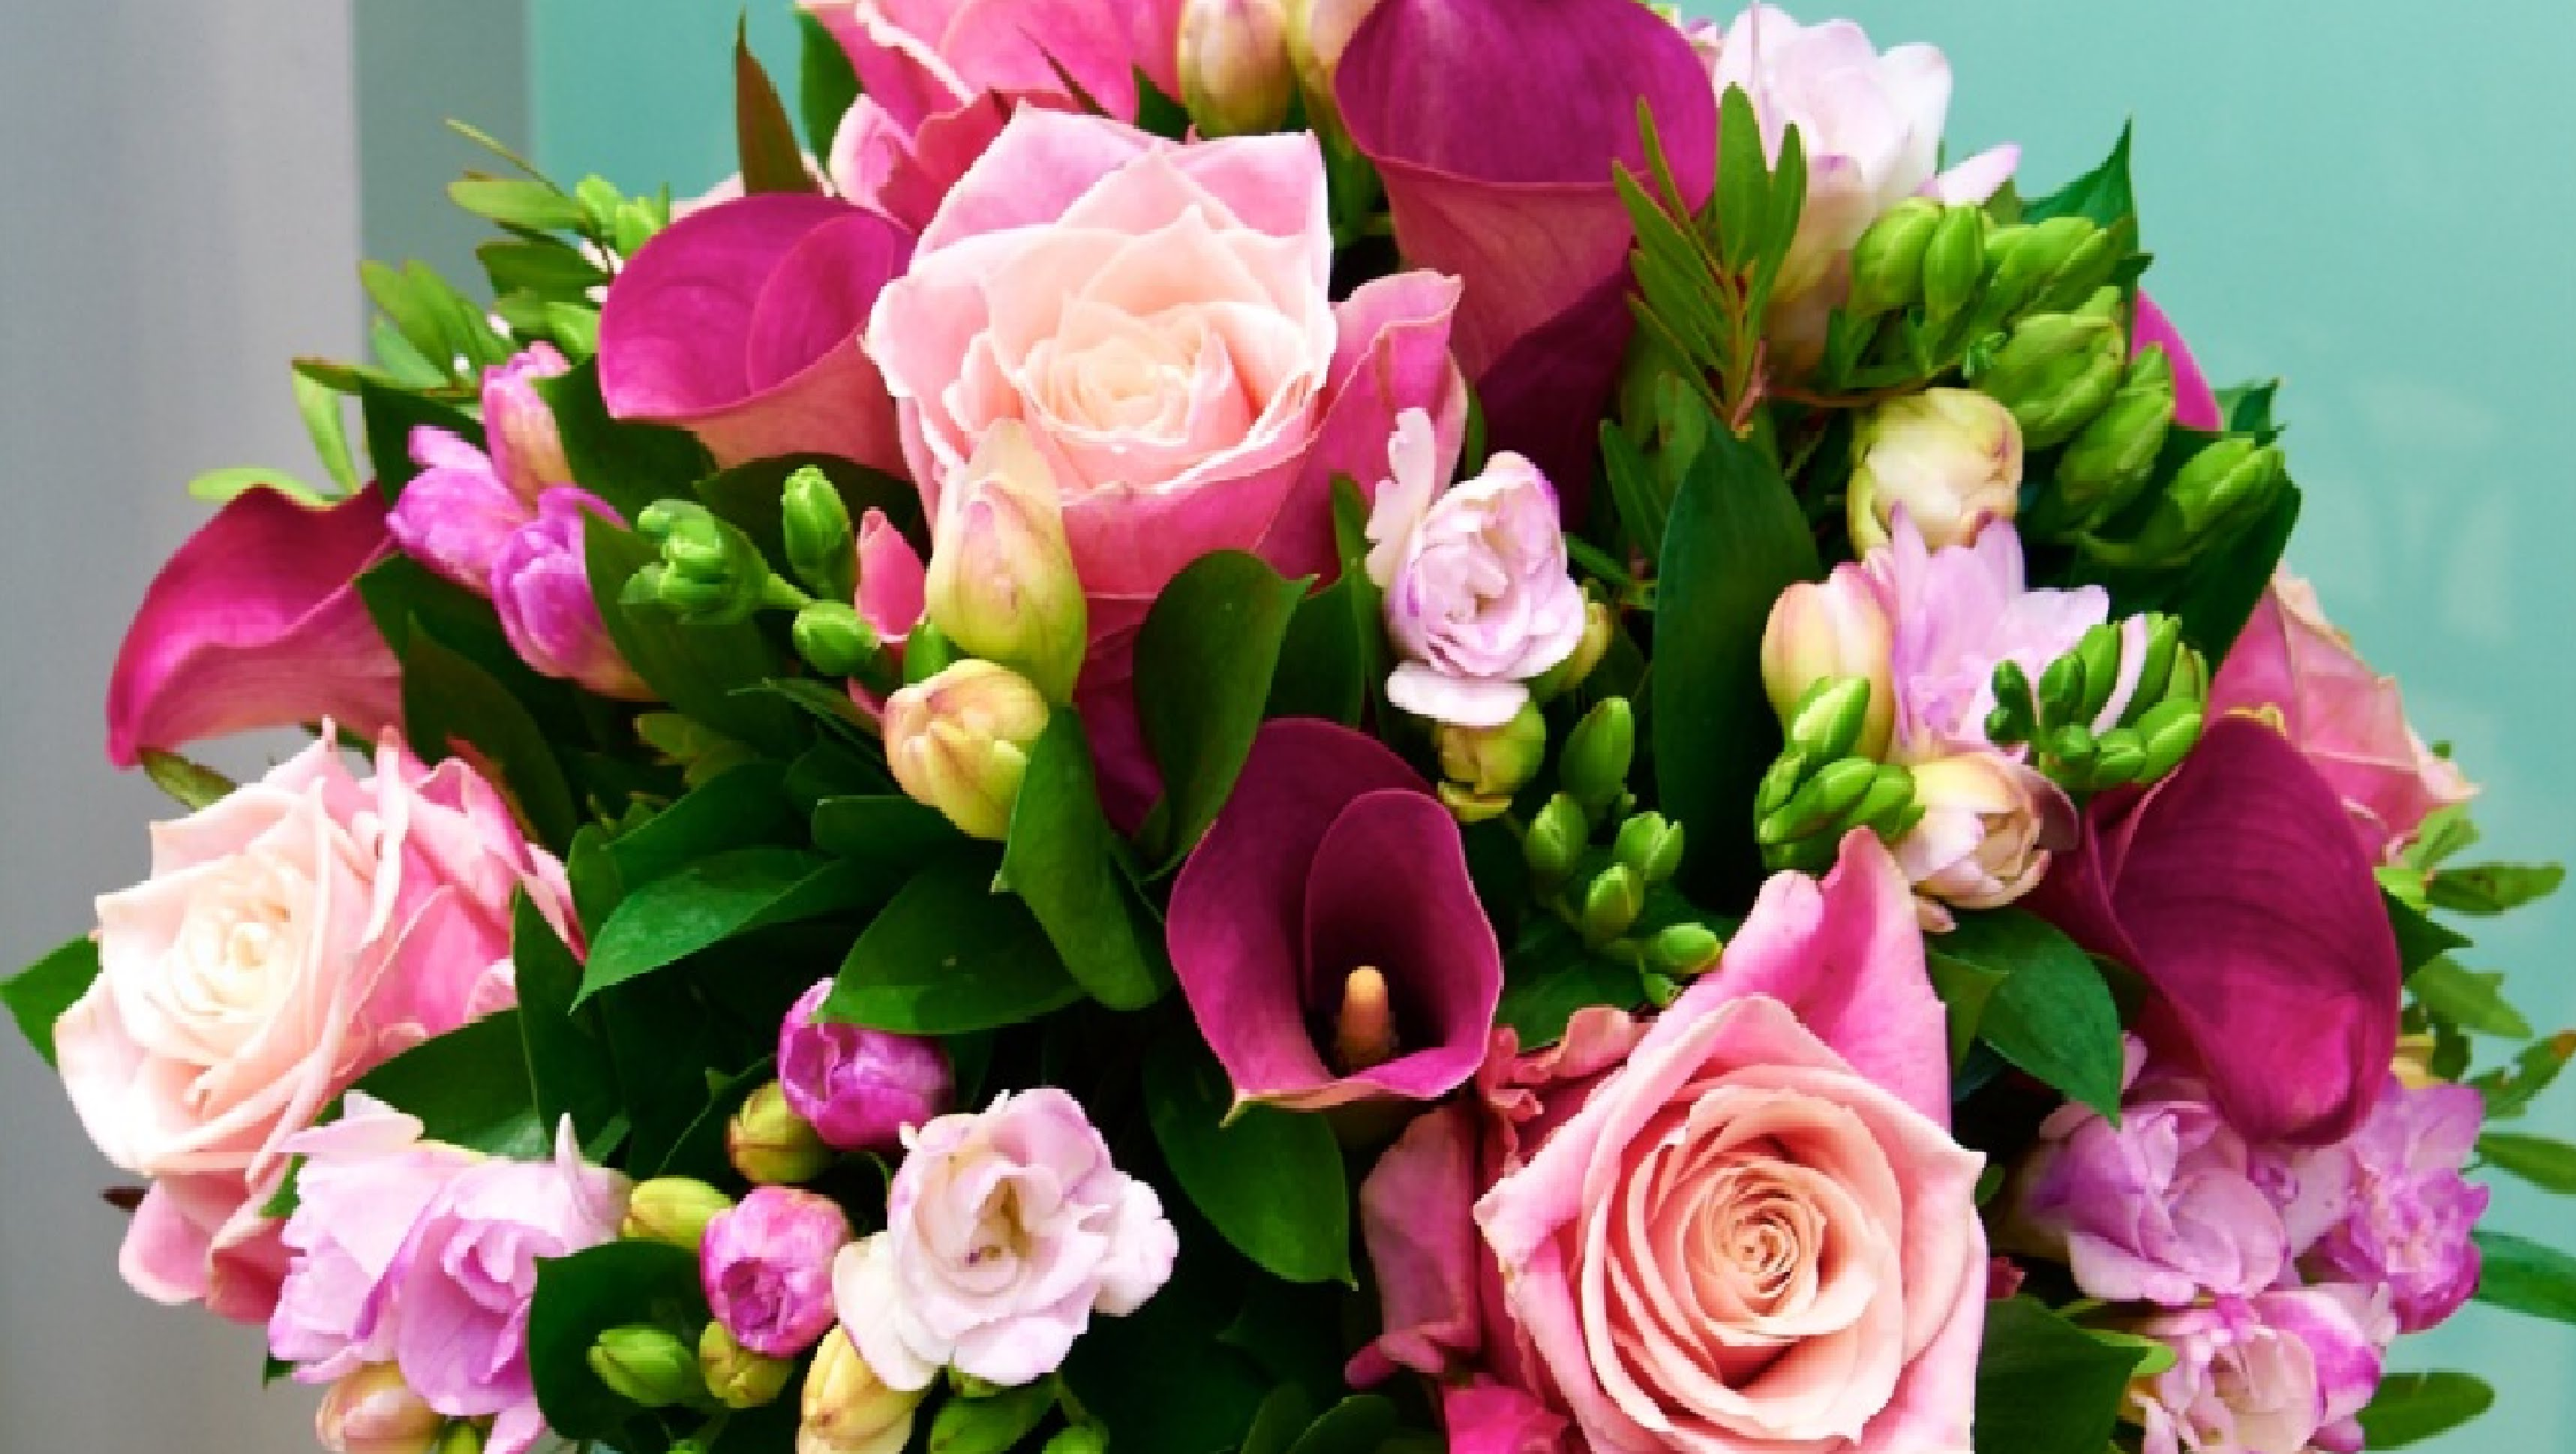 The best places in palm springs to get flowers for mother for Best mothers day flowers